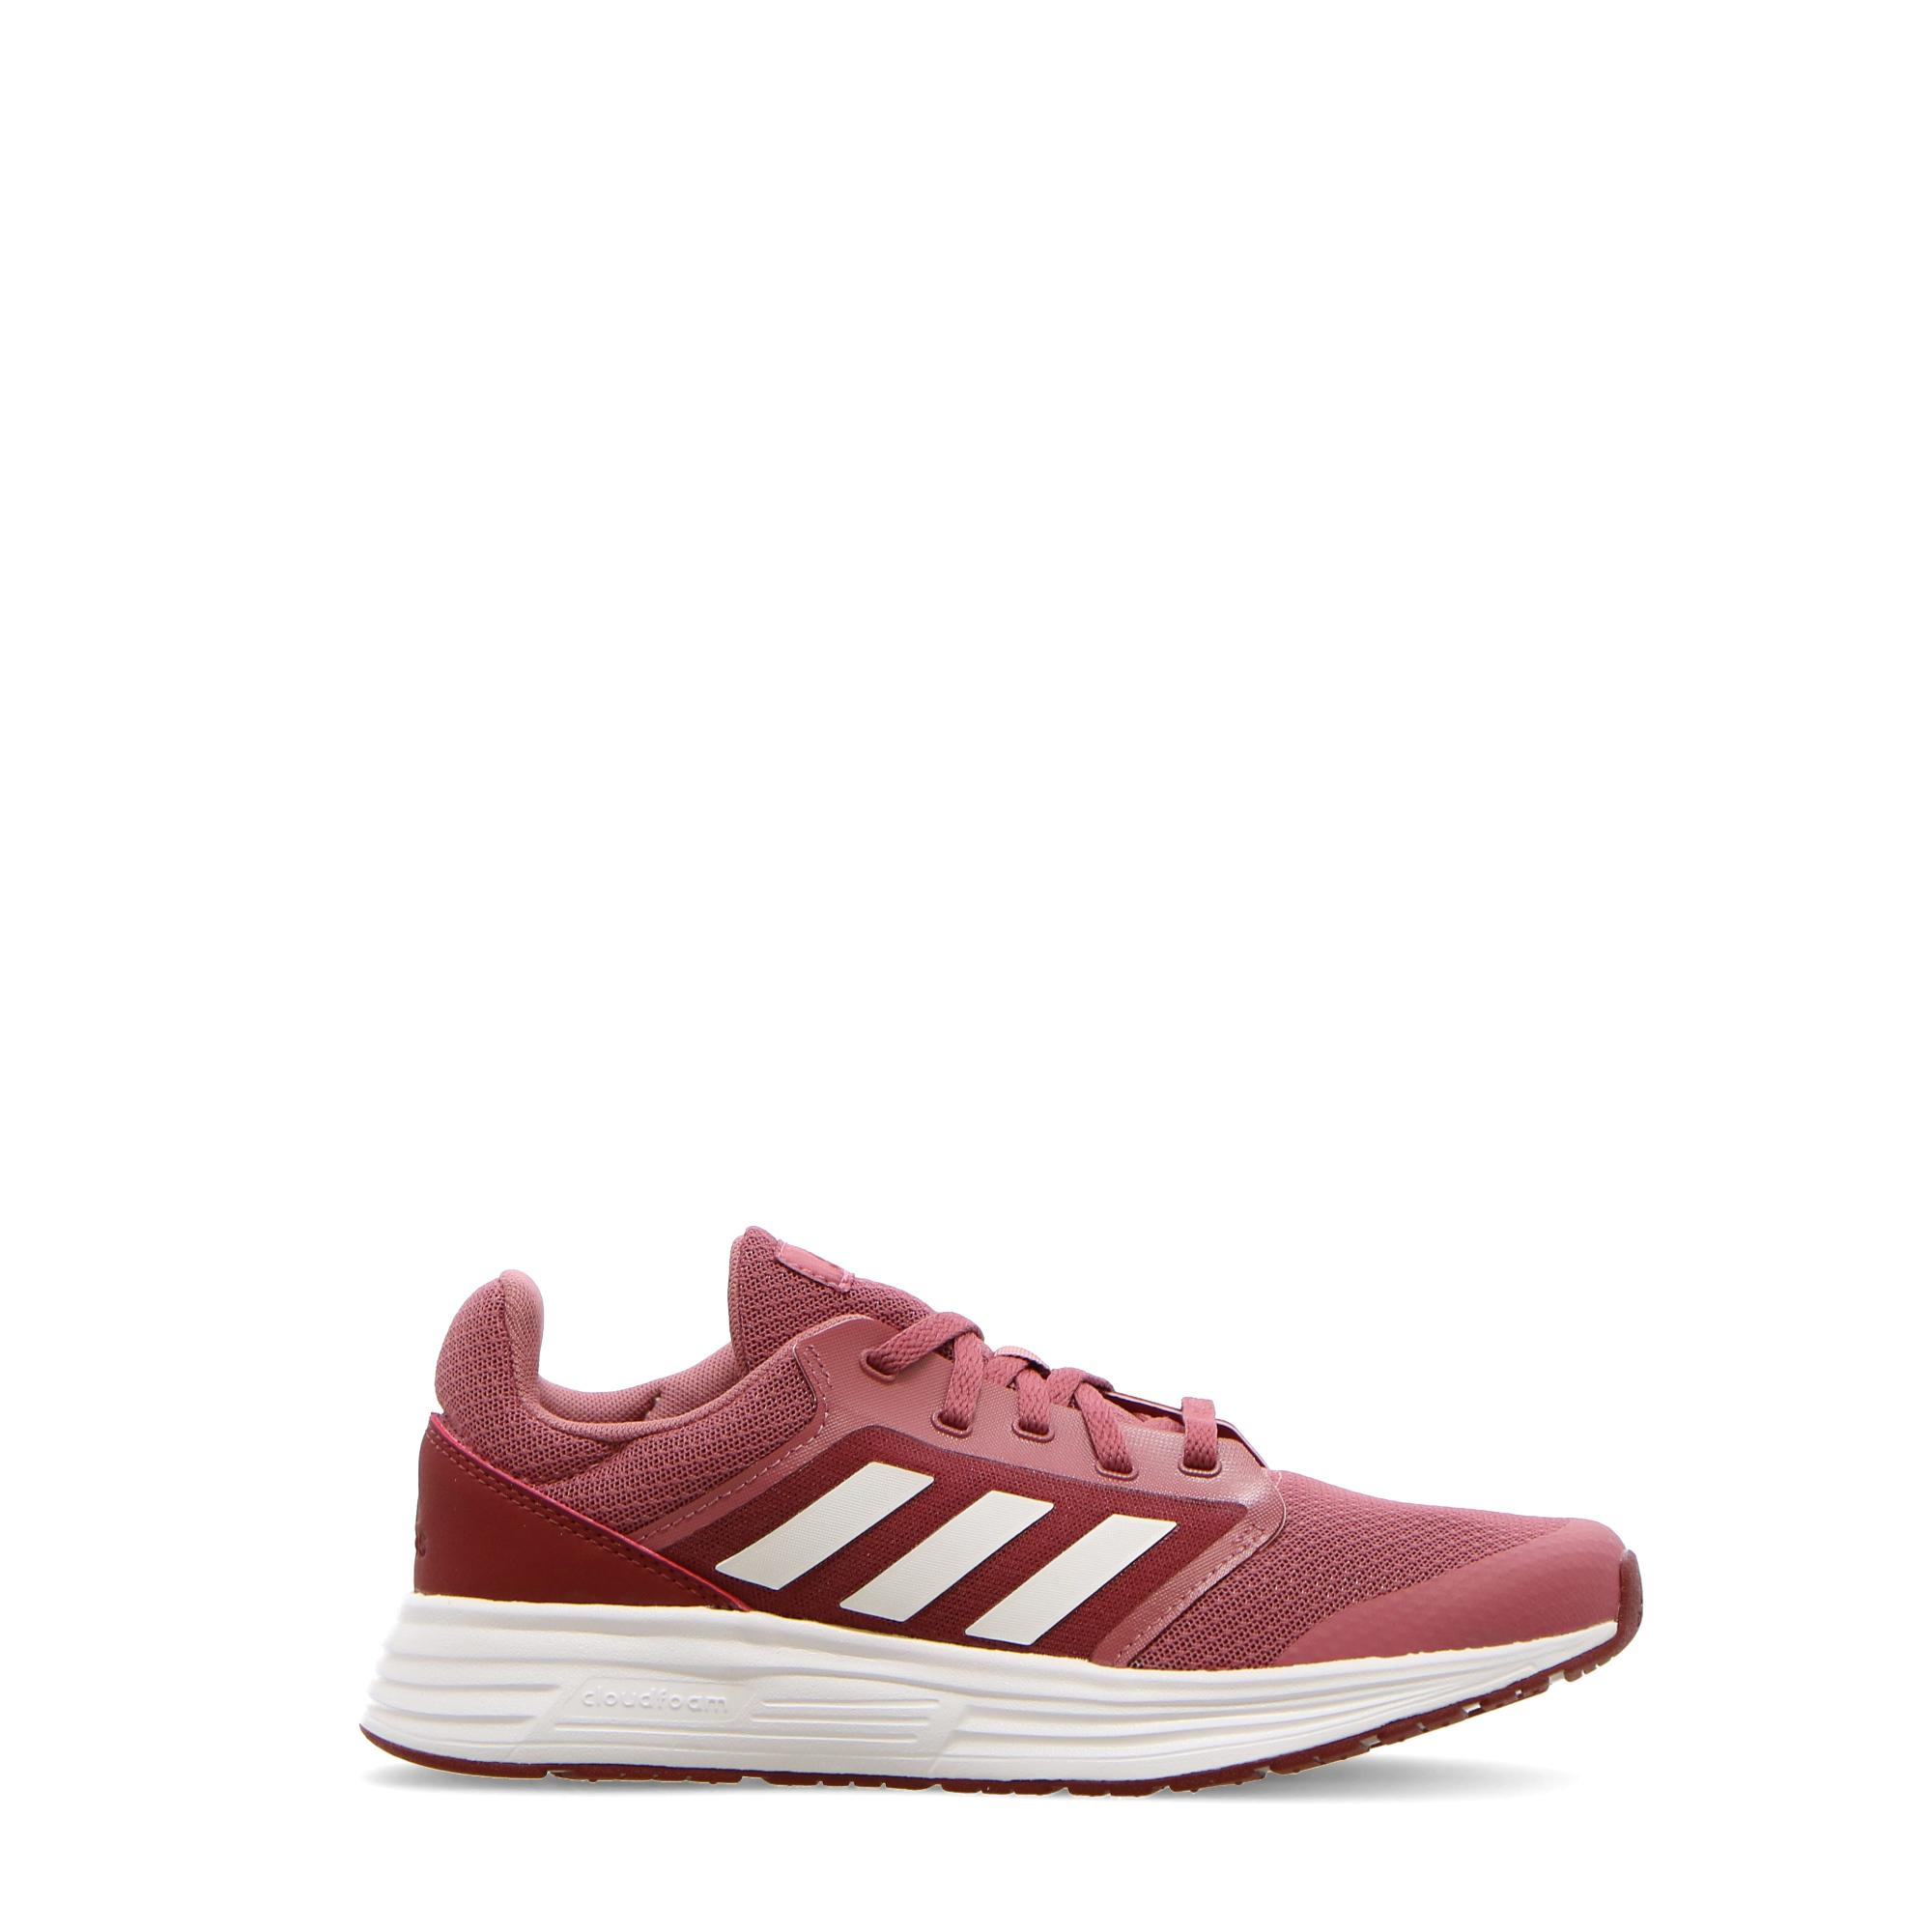 Adidas Galaxy 5 Trace maroon white legacy red